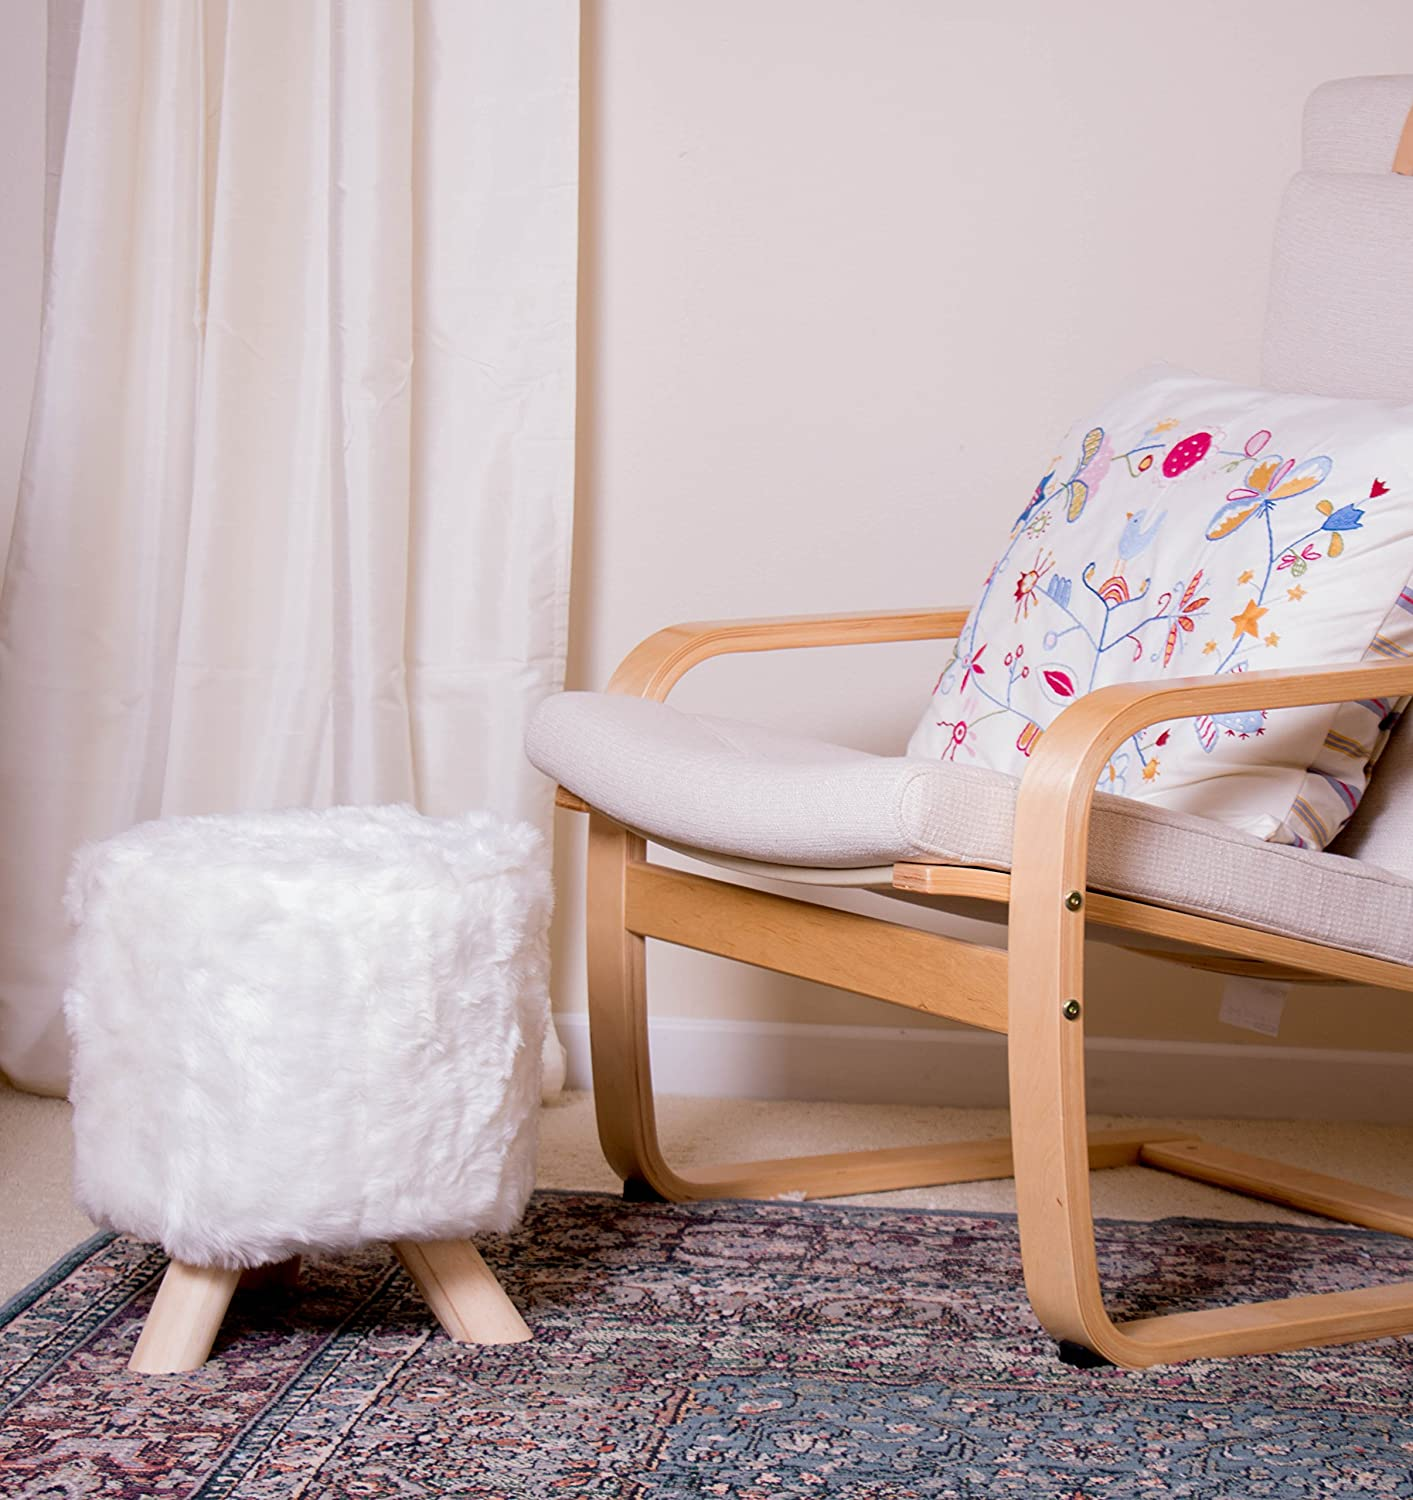 Premium White Ottoman with Faux Fur by Clever Creations | Round Foot Stool | Real Wood Legs | Stylish Trendy Décor